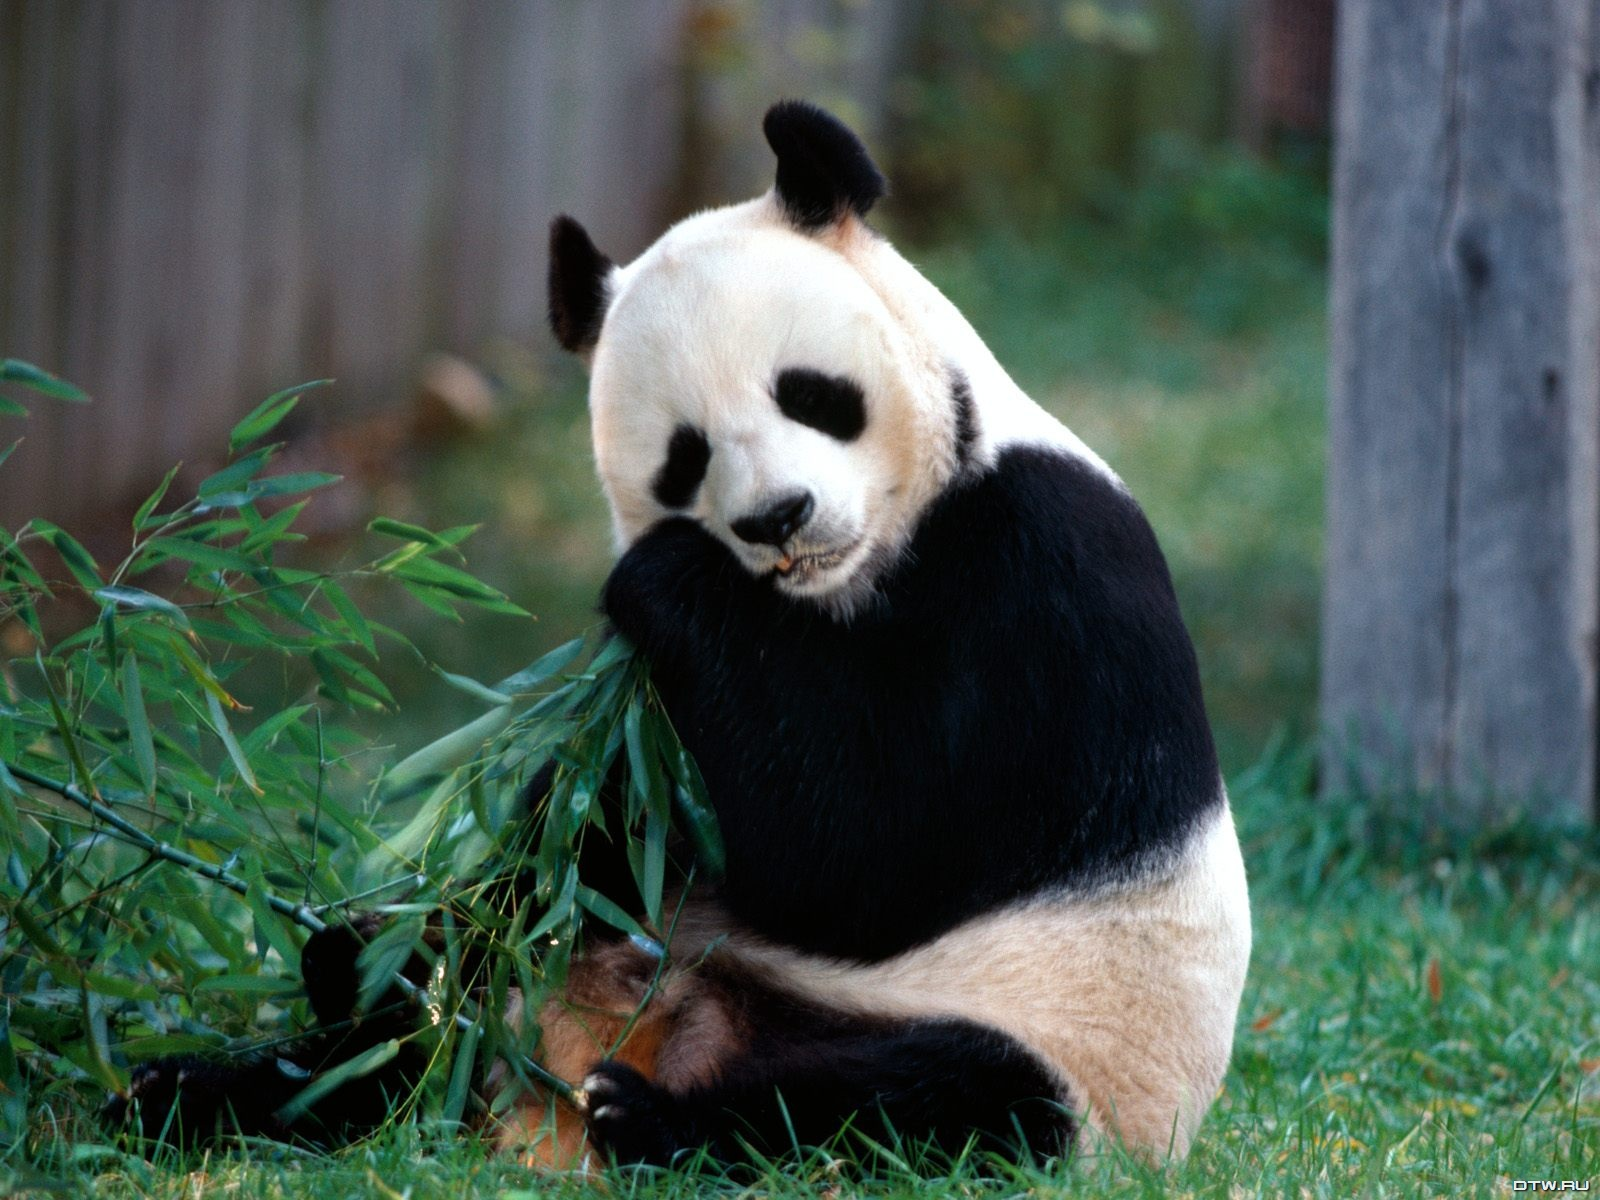 wallpaper hot wallpaper sexy wallpaper 3d wallpaper panda 3d 1600x1200